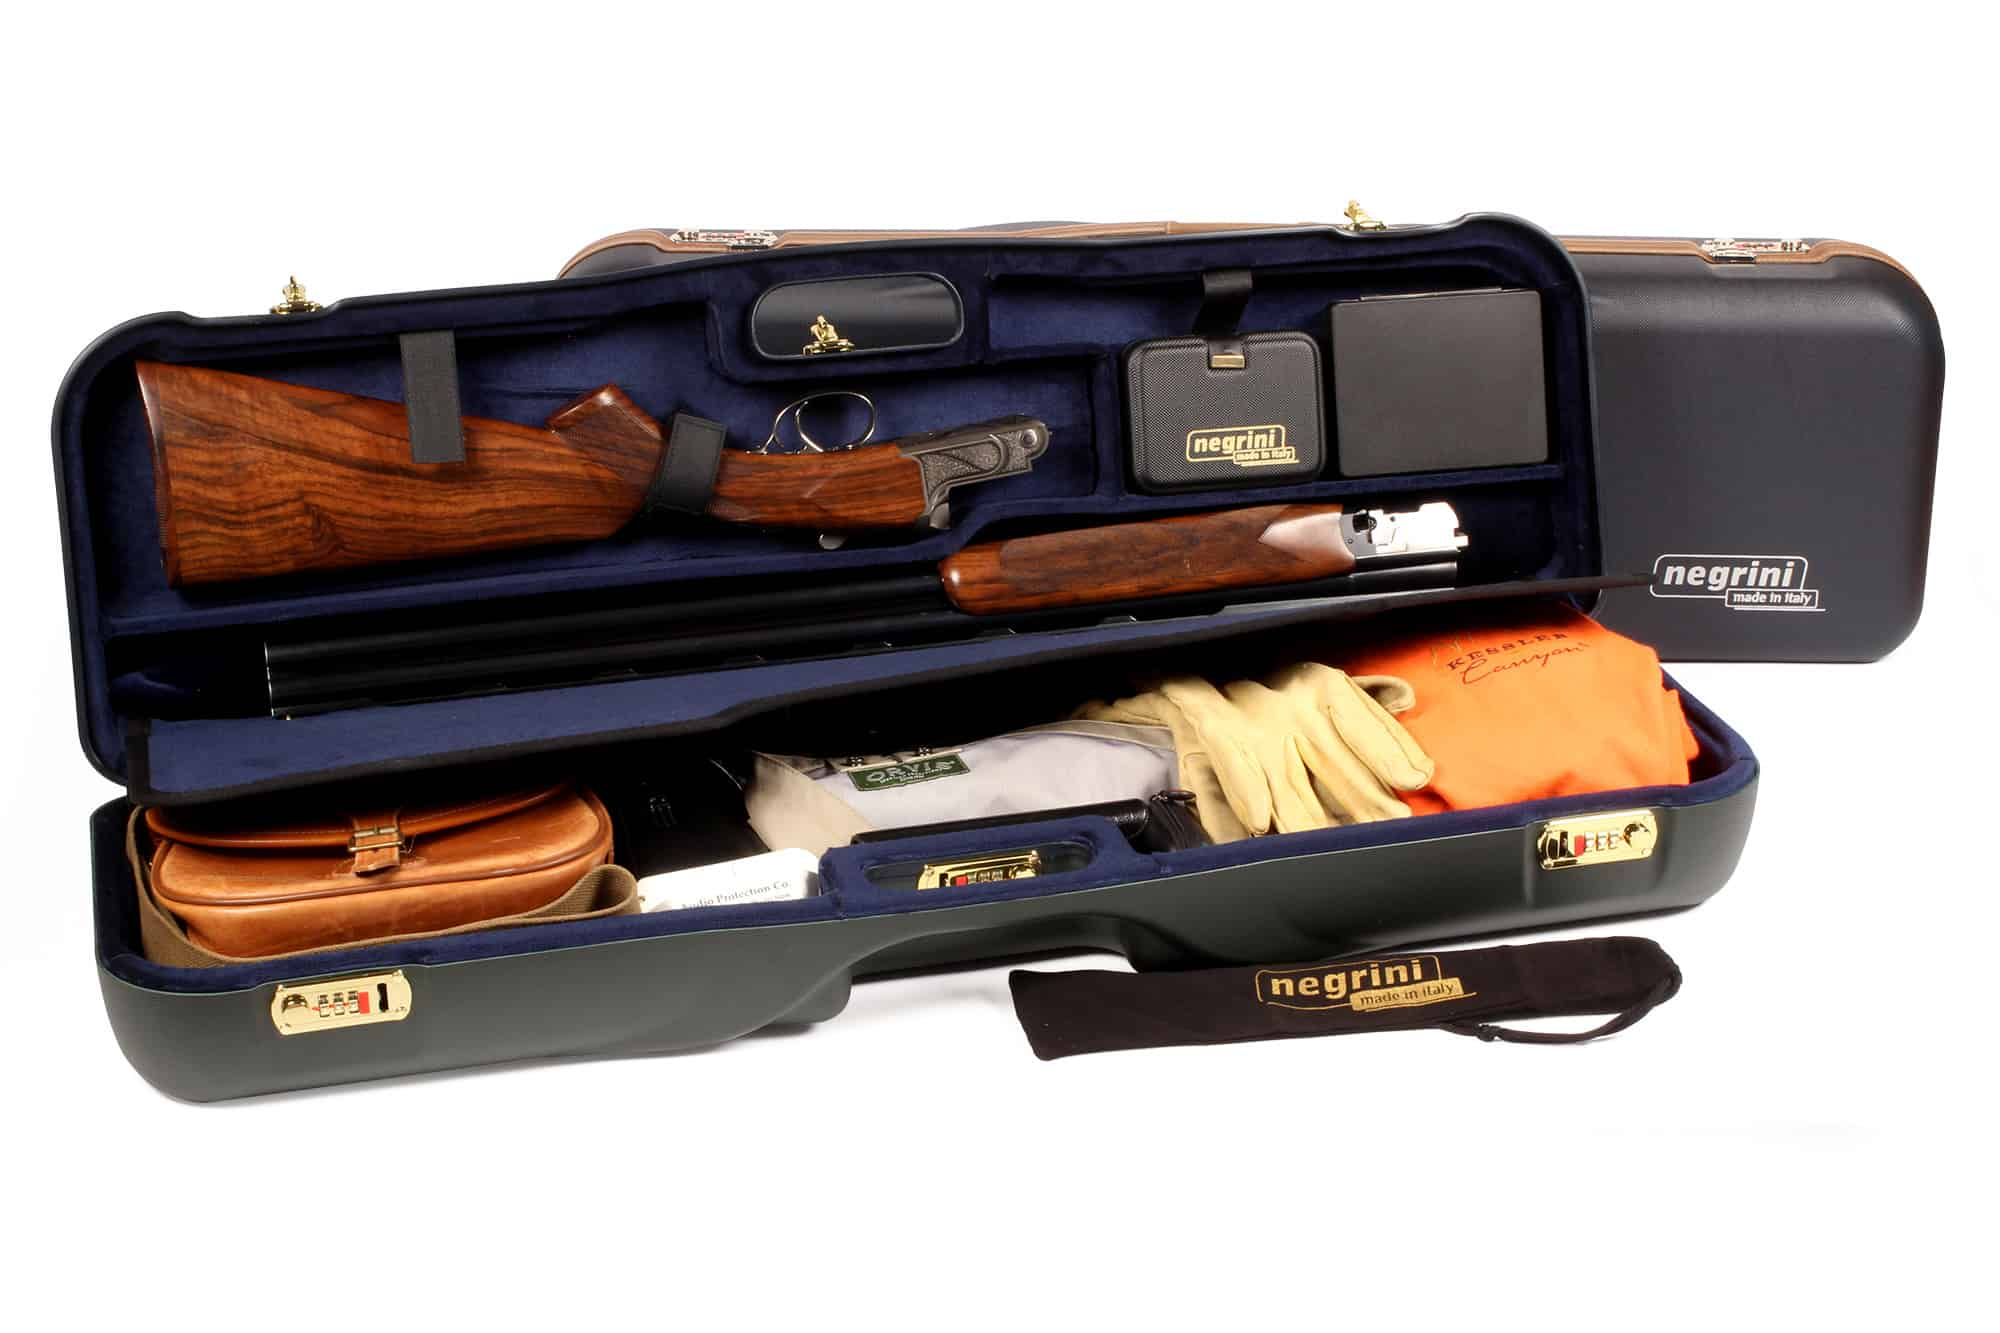 Negrini Luxury Hard Gun Cases - Airline Approved Cases for